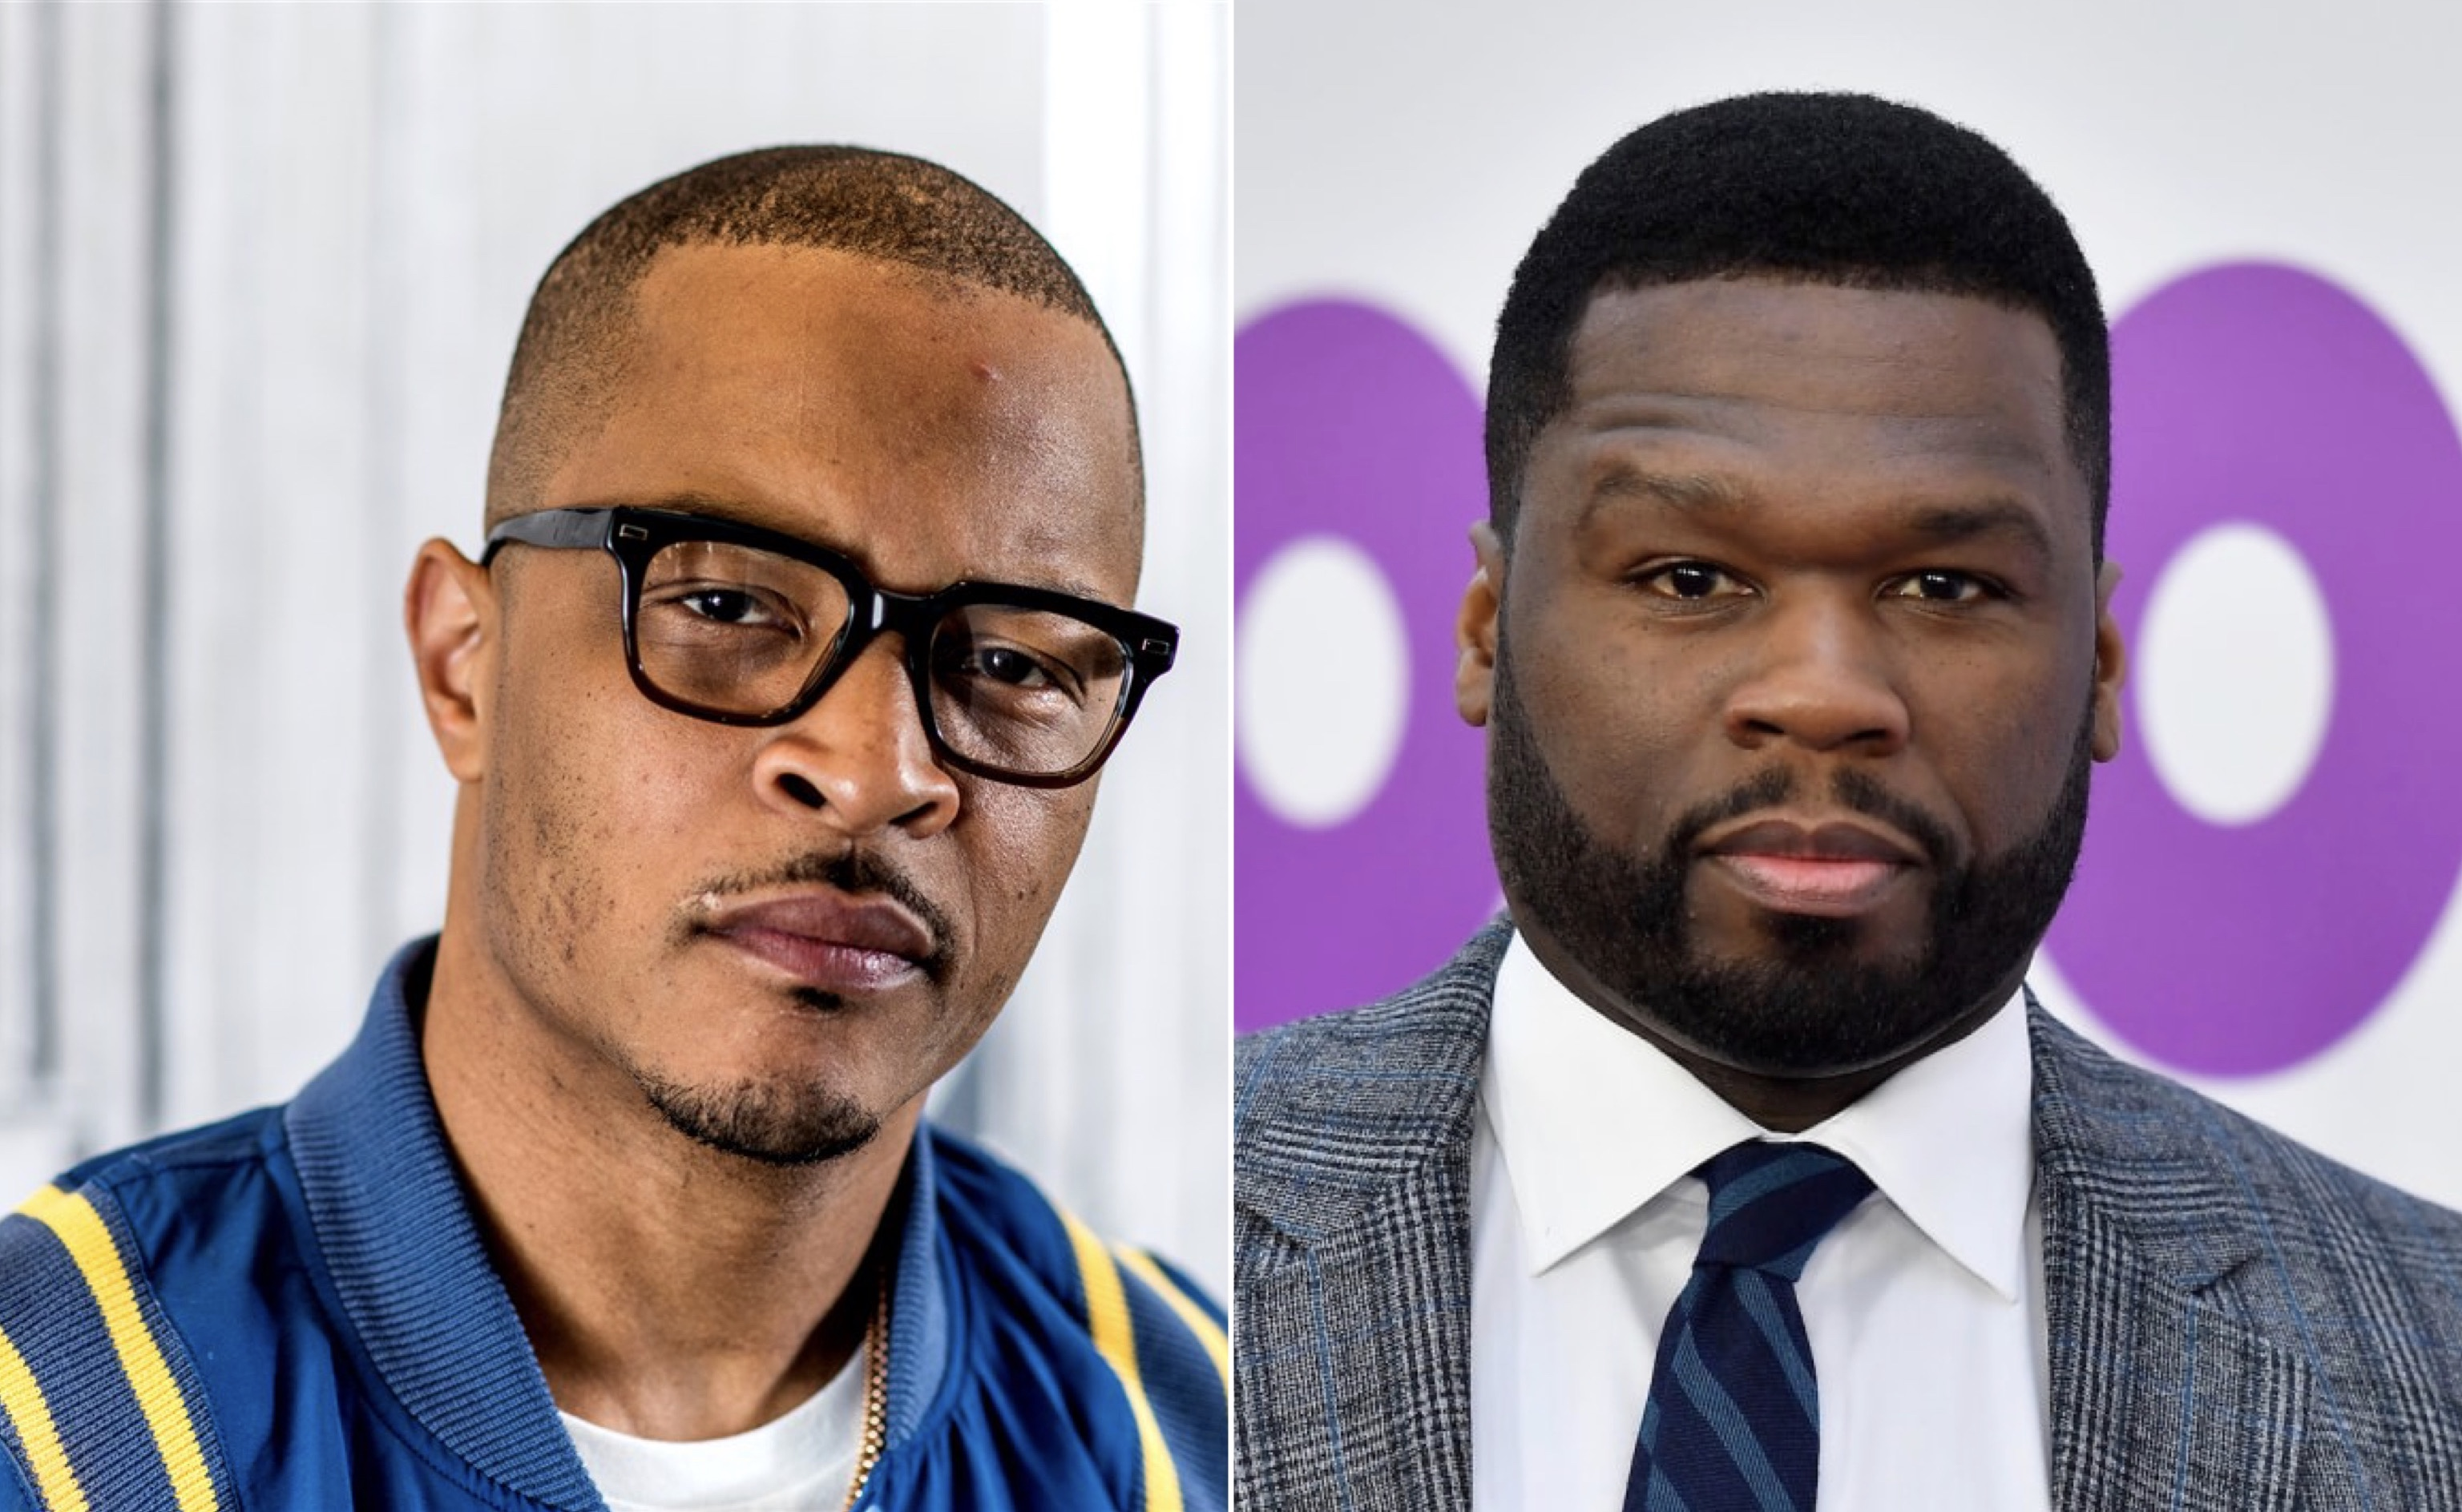 T.I. and 50 Cent